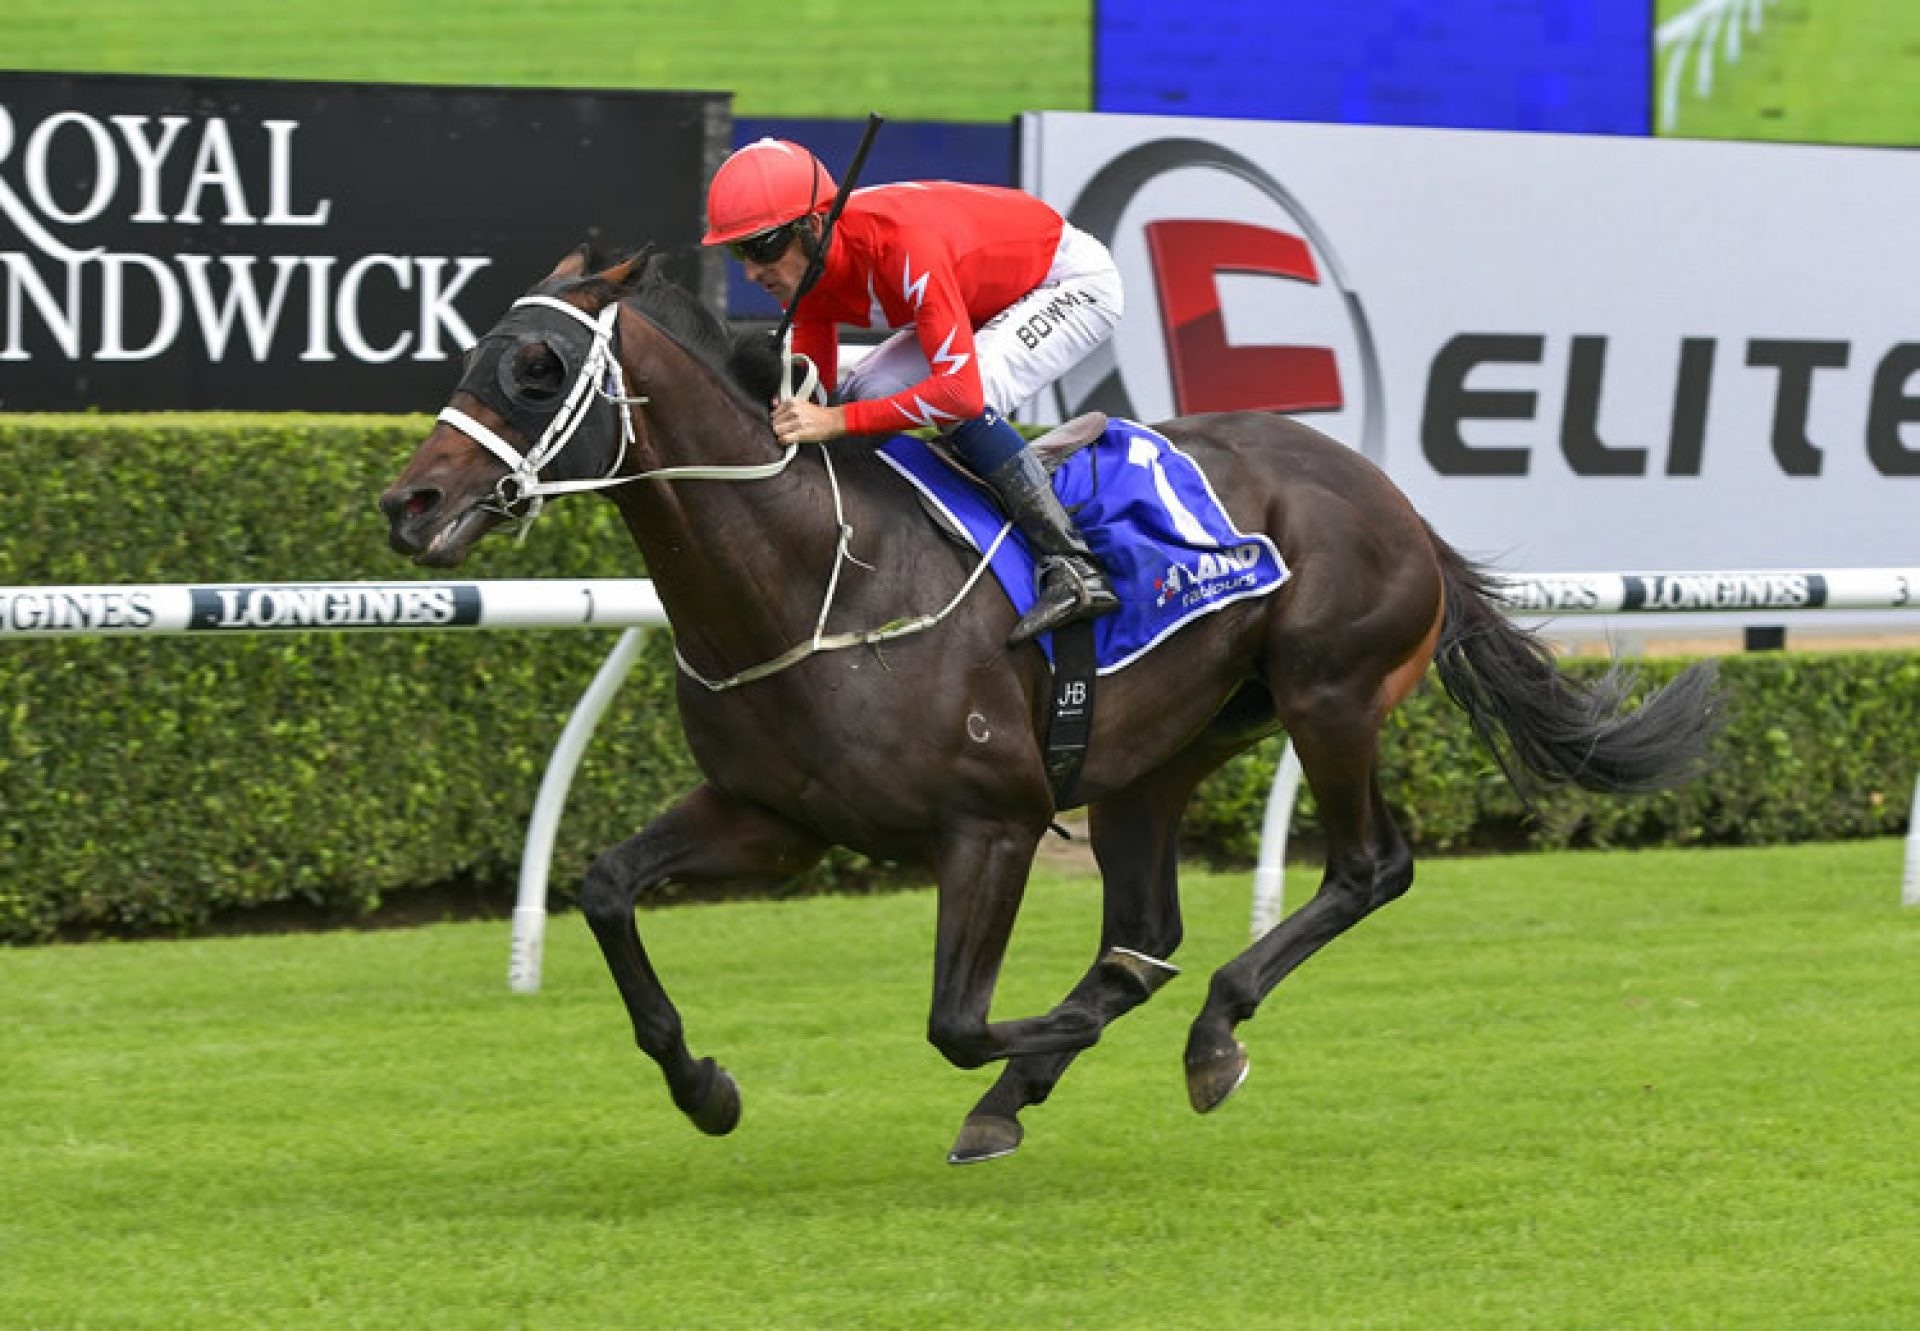 Wheelhouse (Pierro) winning at Randwick